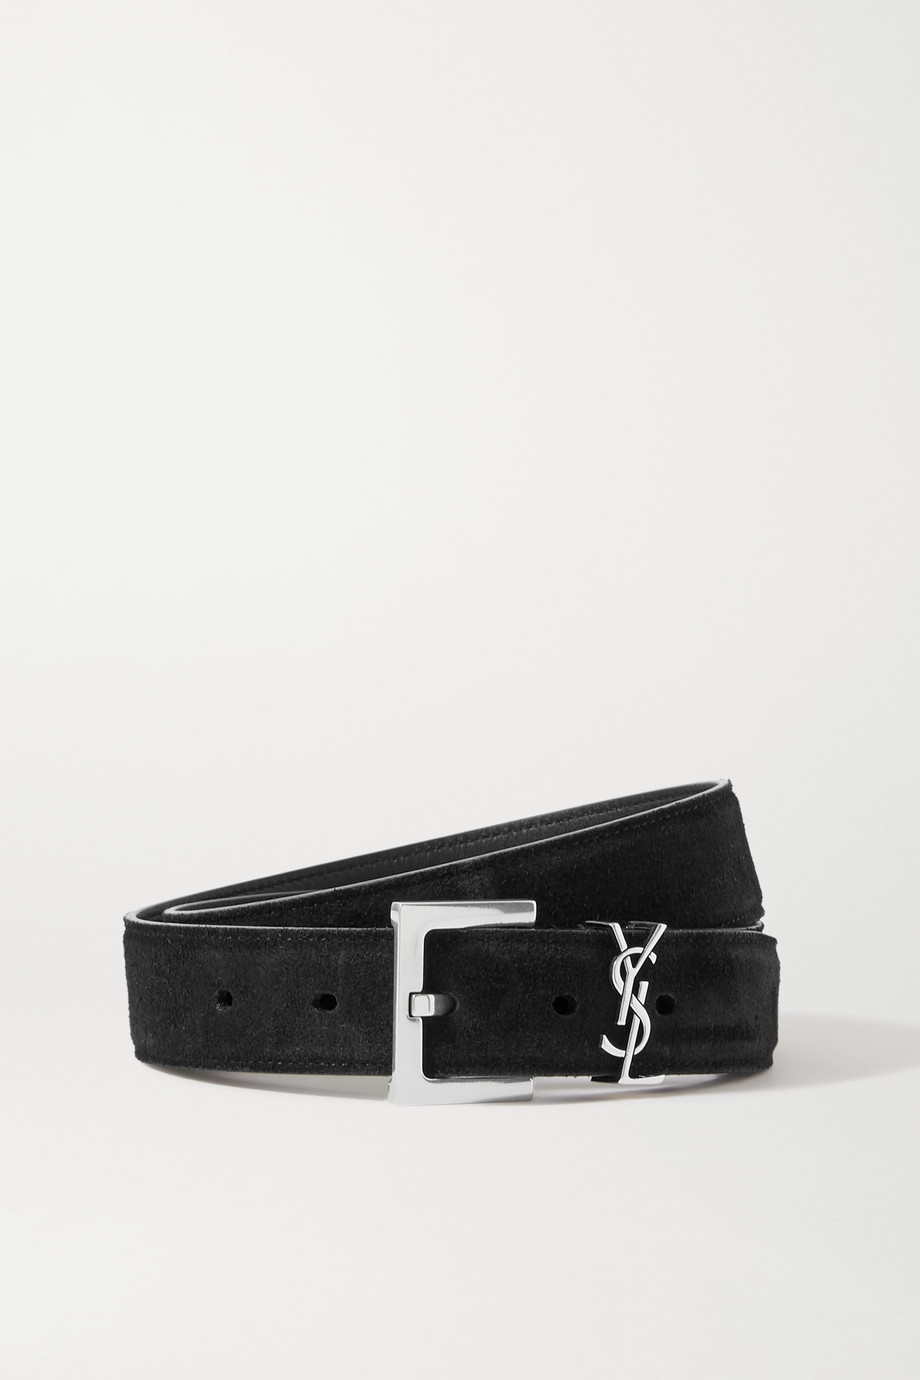 SAINT LAURENT Monogramme suede waist belt